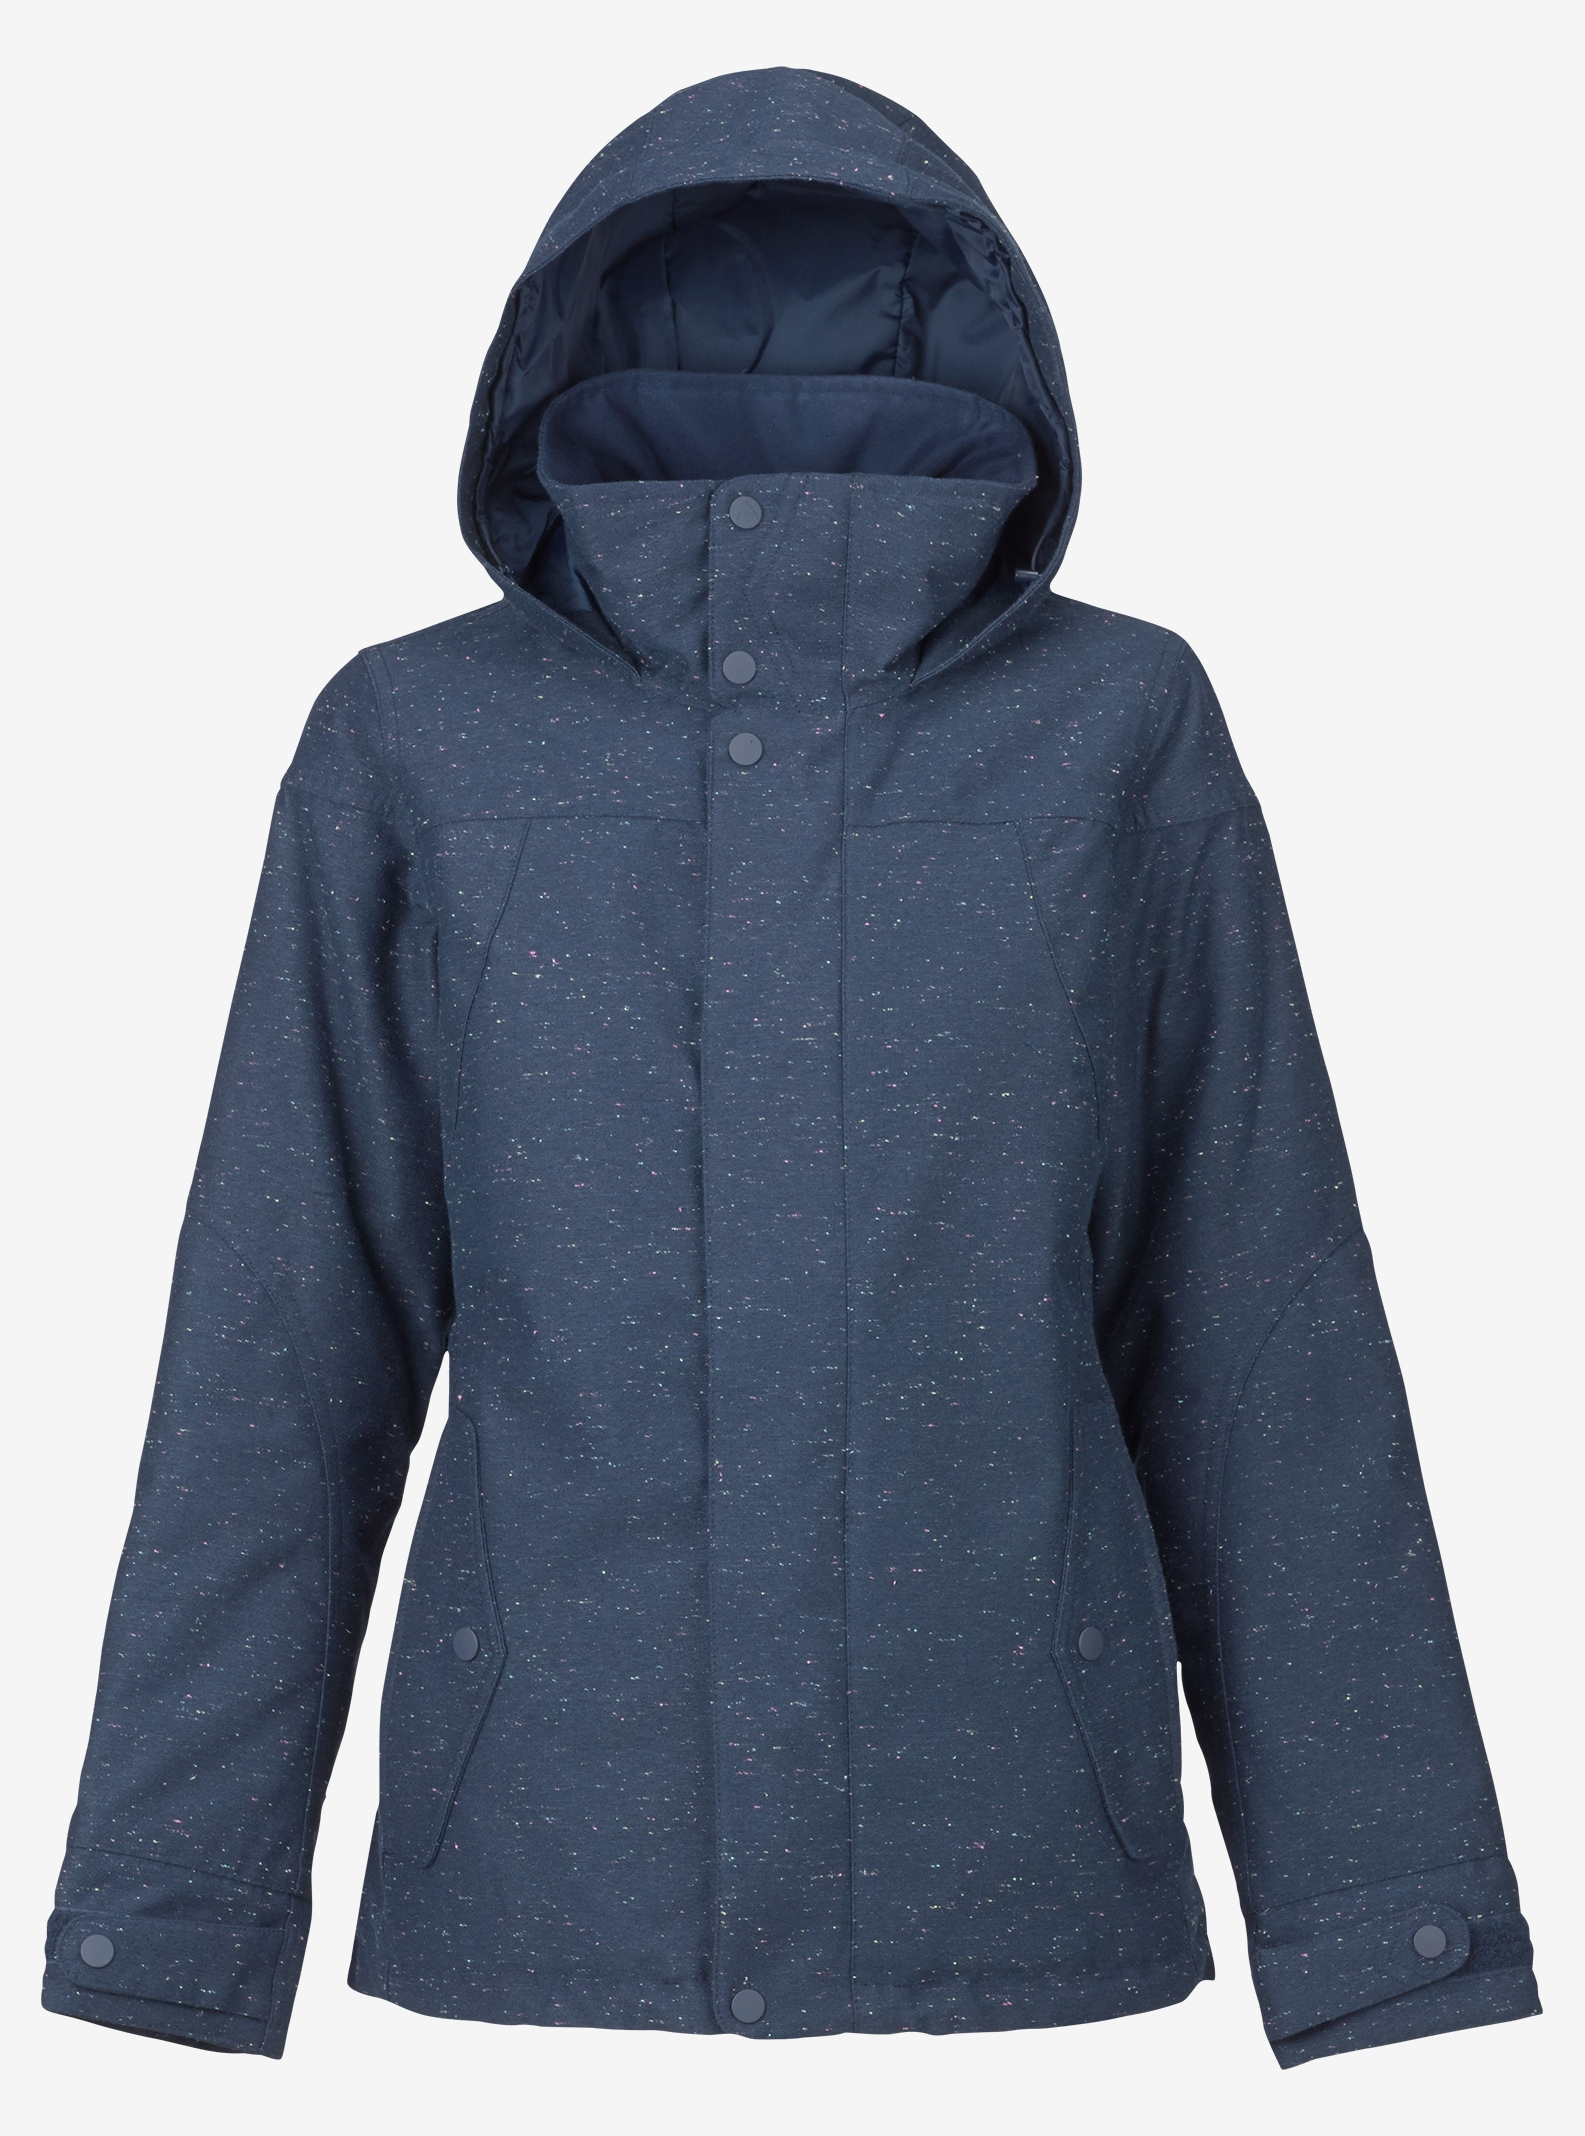 Women's Burton Jet Set Jacket shown in Mood Indigo Fleck